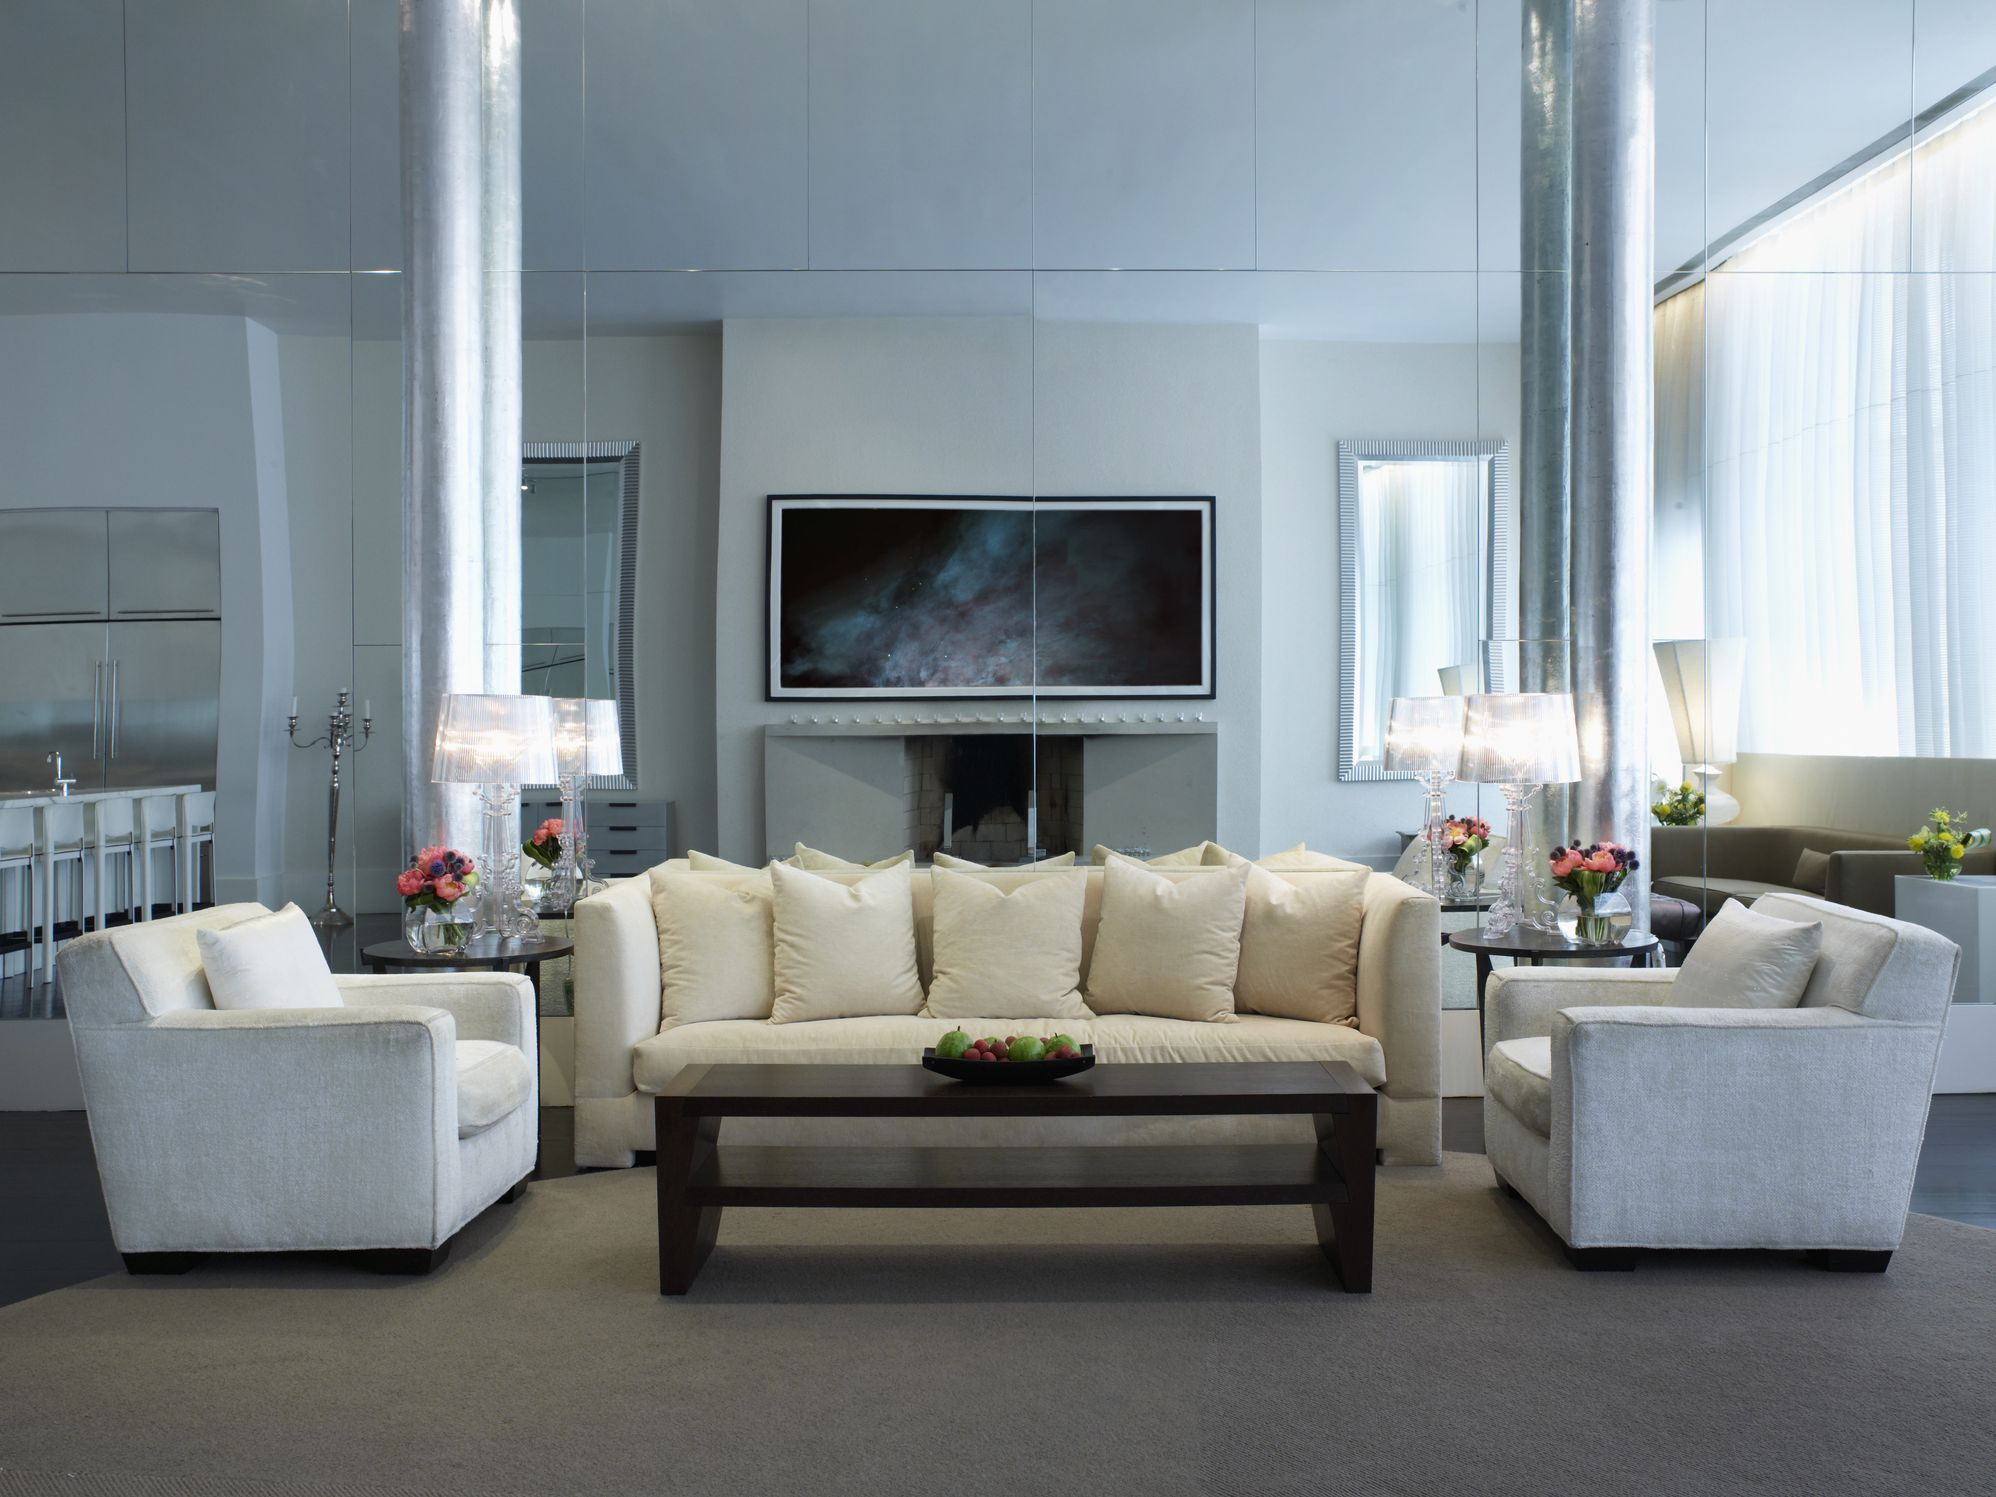 modern living room decor ideas.htm stage your for sale home or leave it empty   stage your for sale home or leave it empty